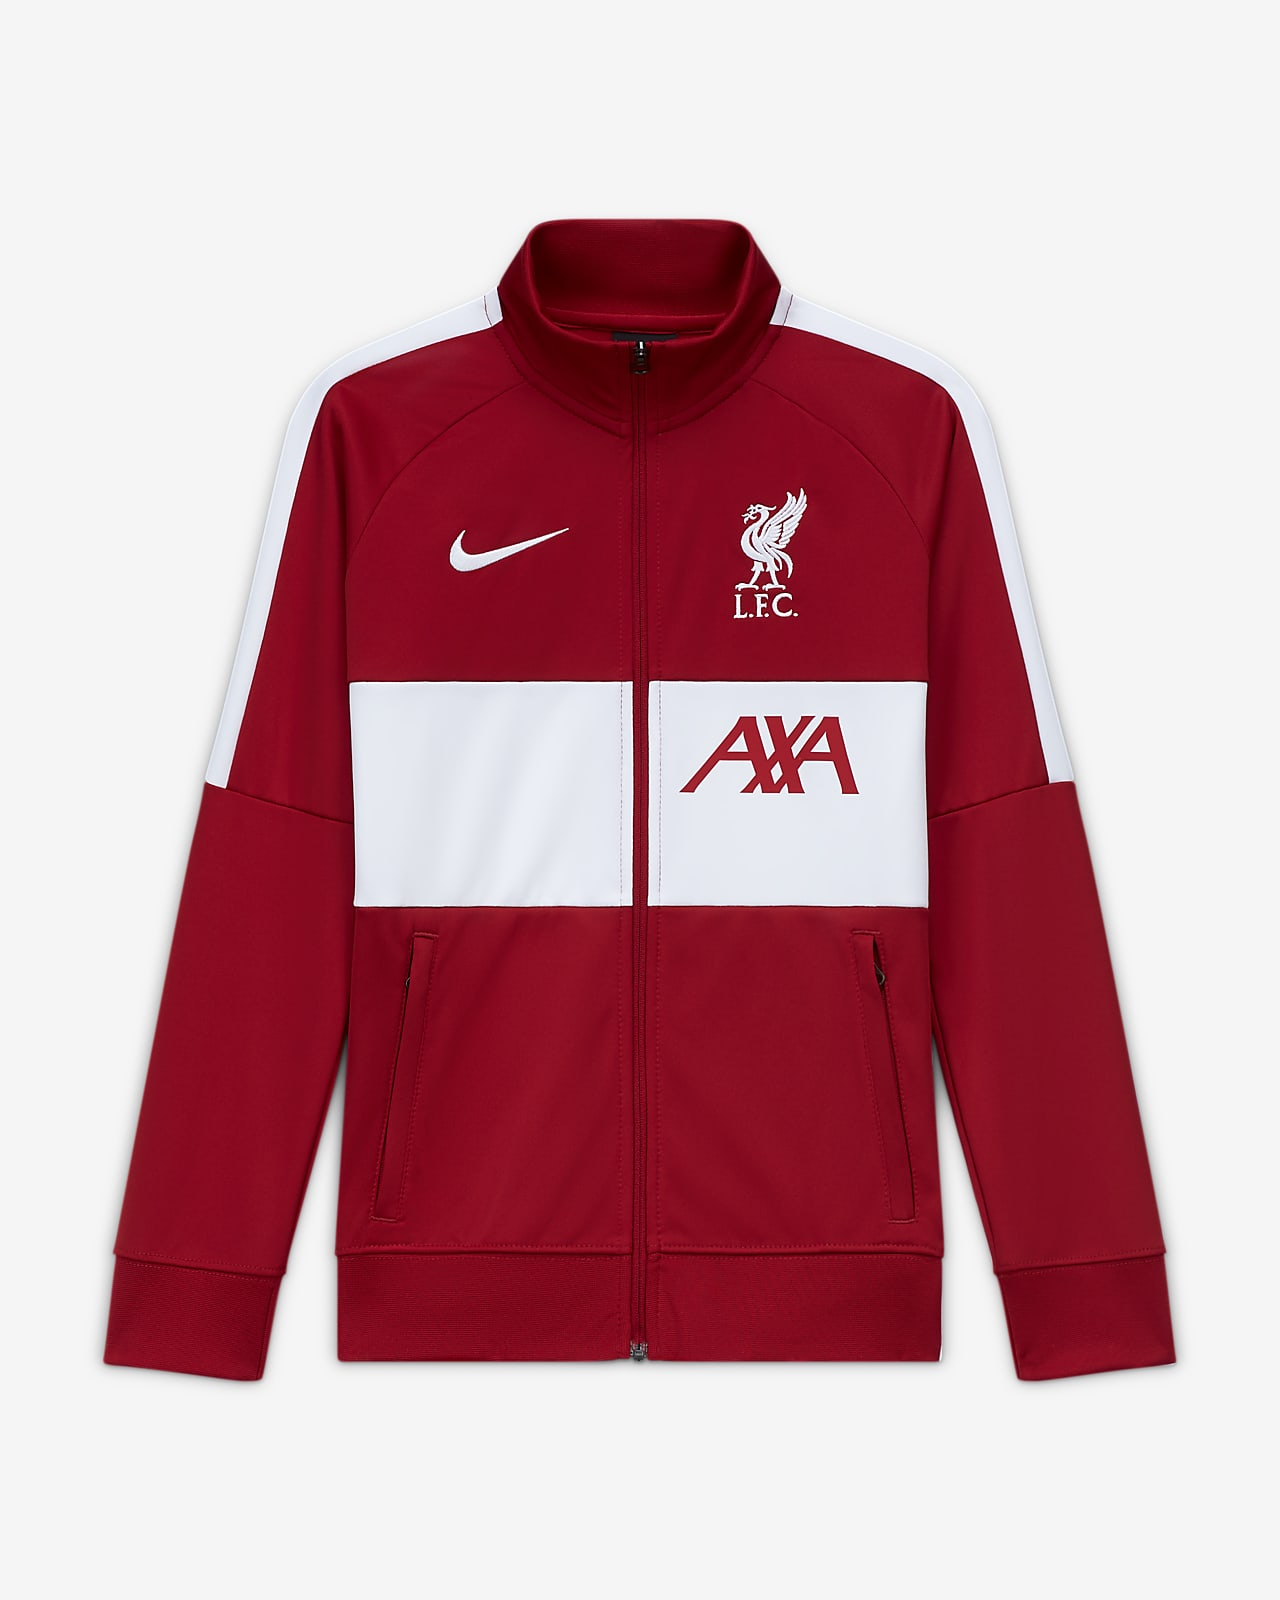 Liverpool F.C. Older Kids' Football Tracksuit Jacket